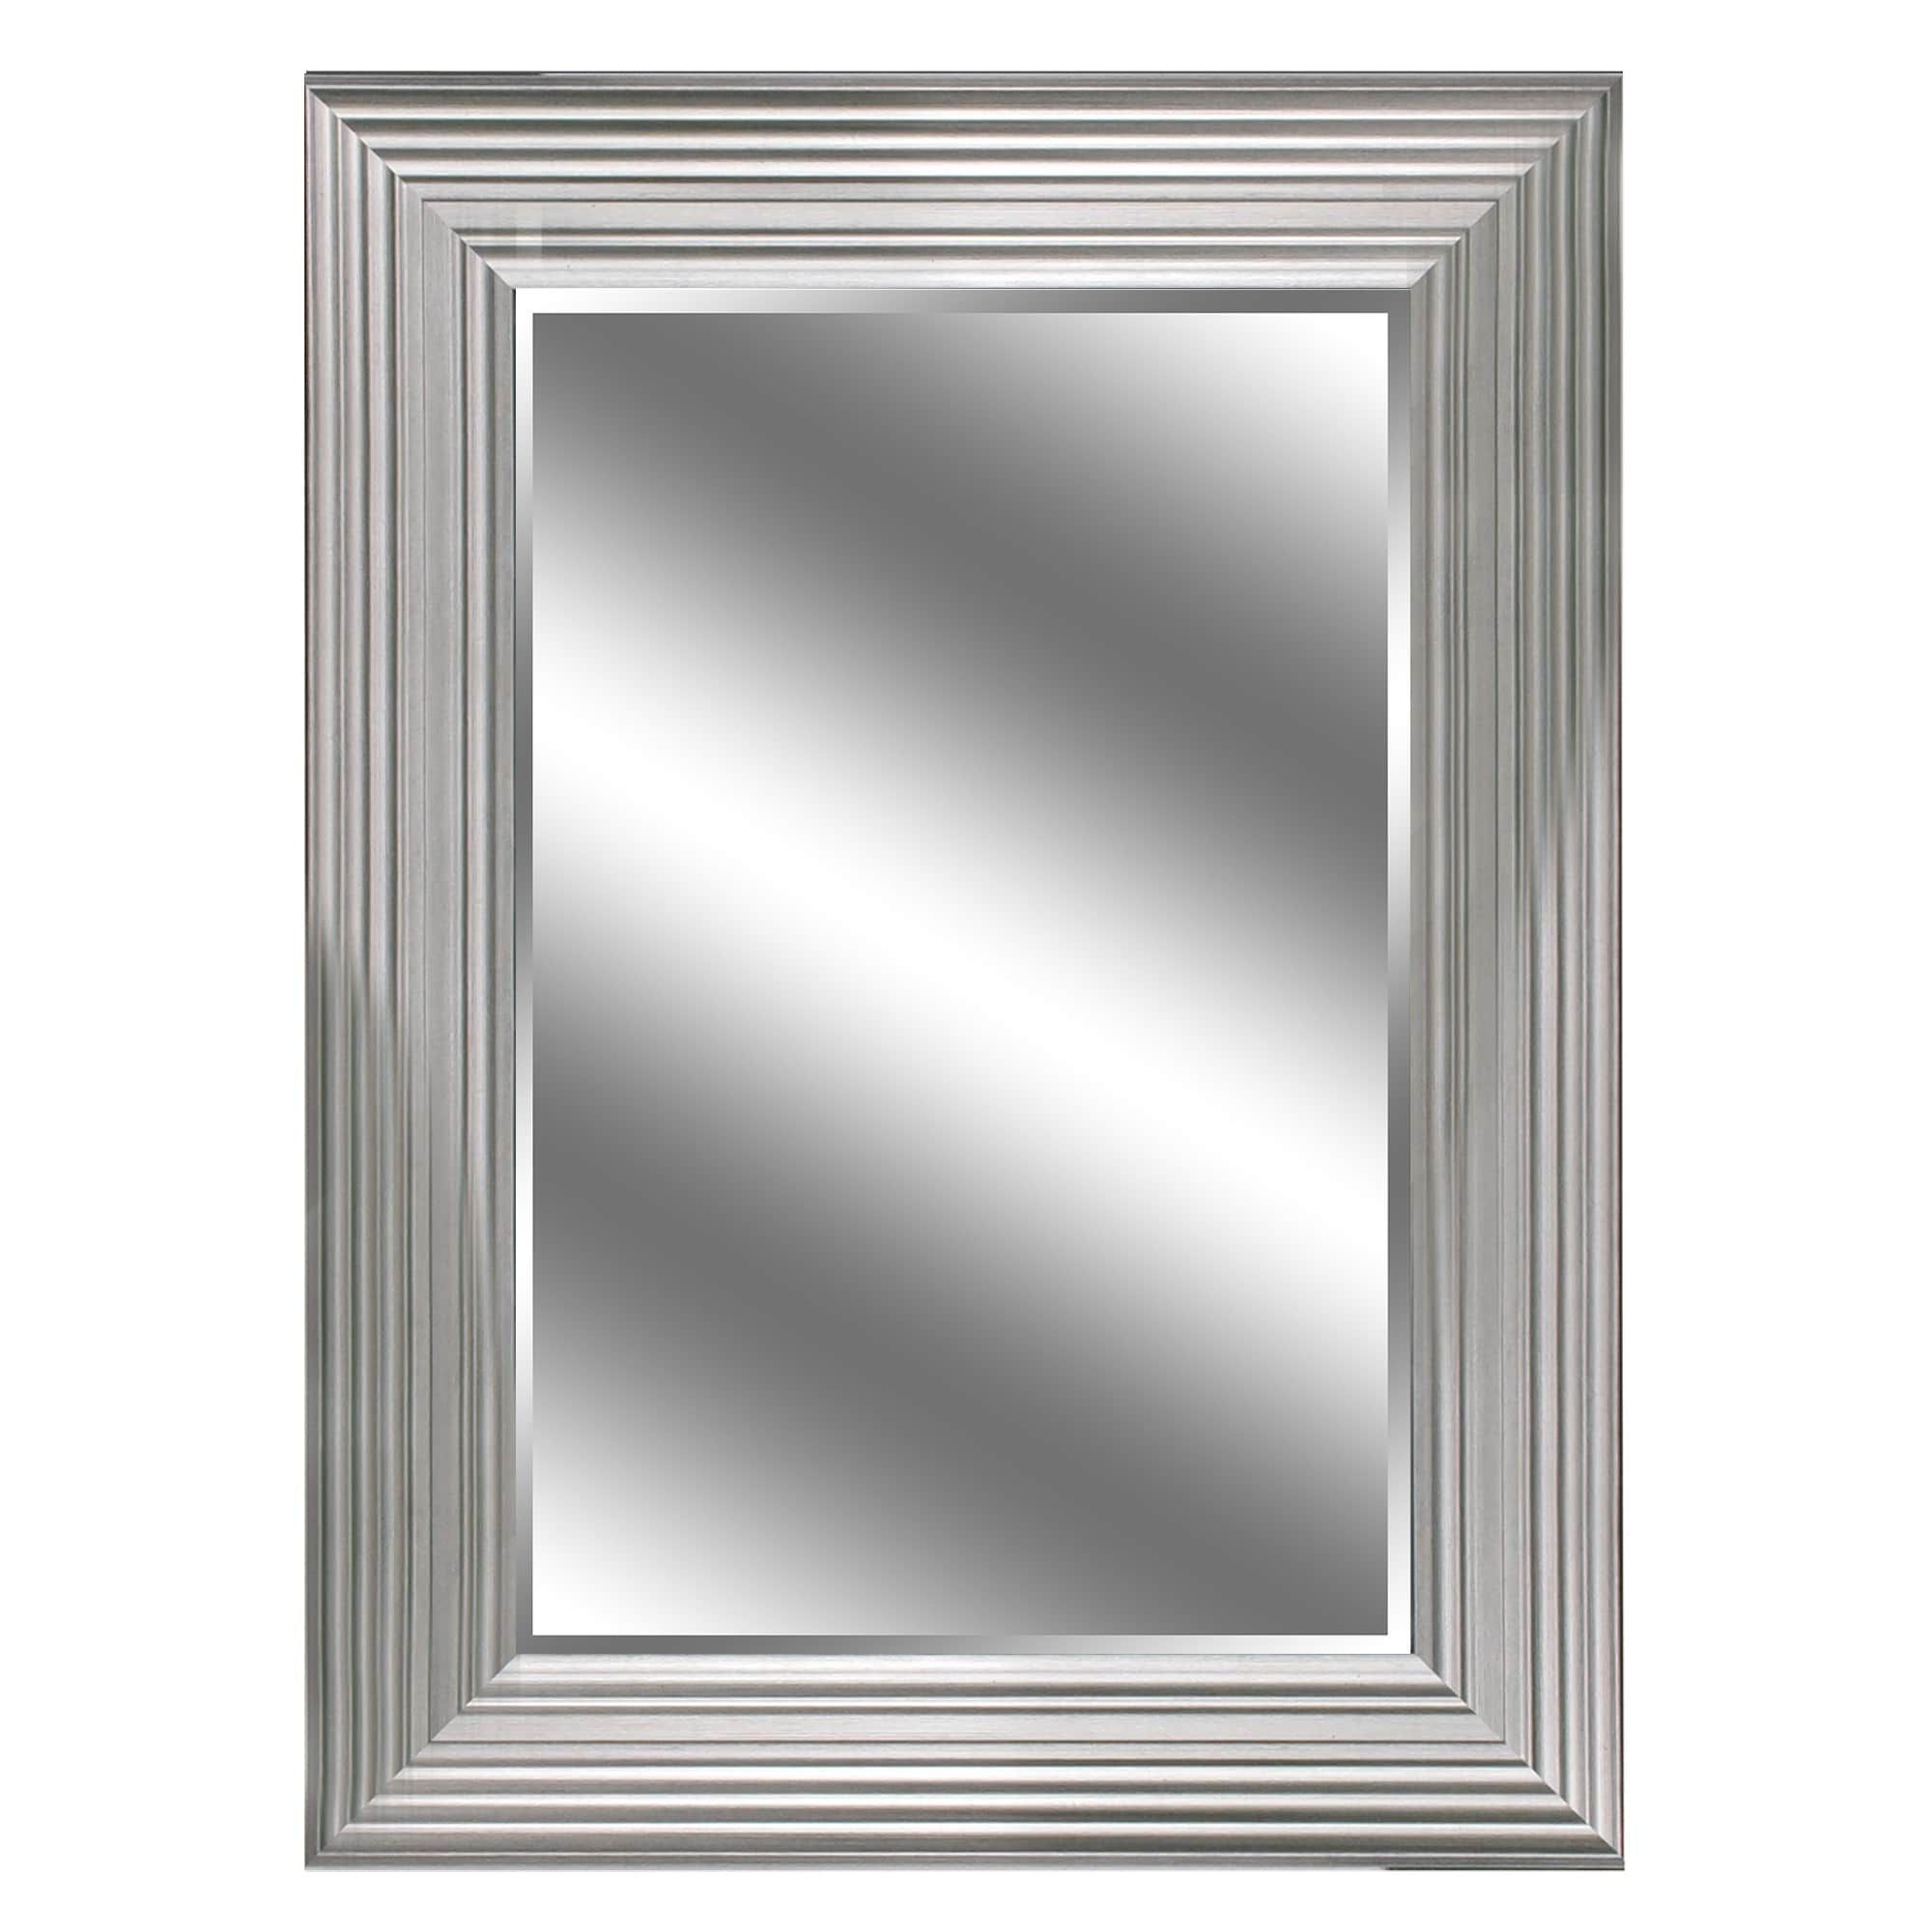 """Dedrick Decorative Framed Modern And Contemporary Wall Mirrors Inside Best And Newest 24"""" X 36"""" Silver Woodgrain Mirror 1"""" Bevel With 5"""" Frame (View 6 of 20)"""